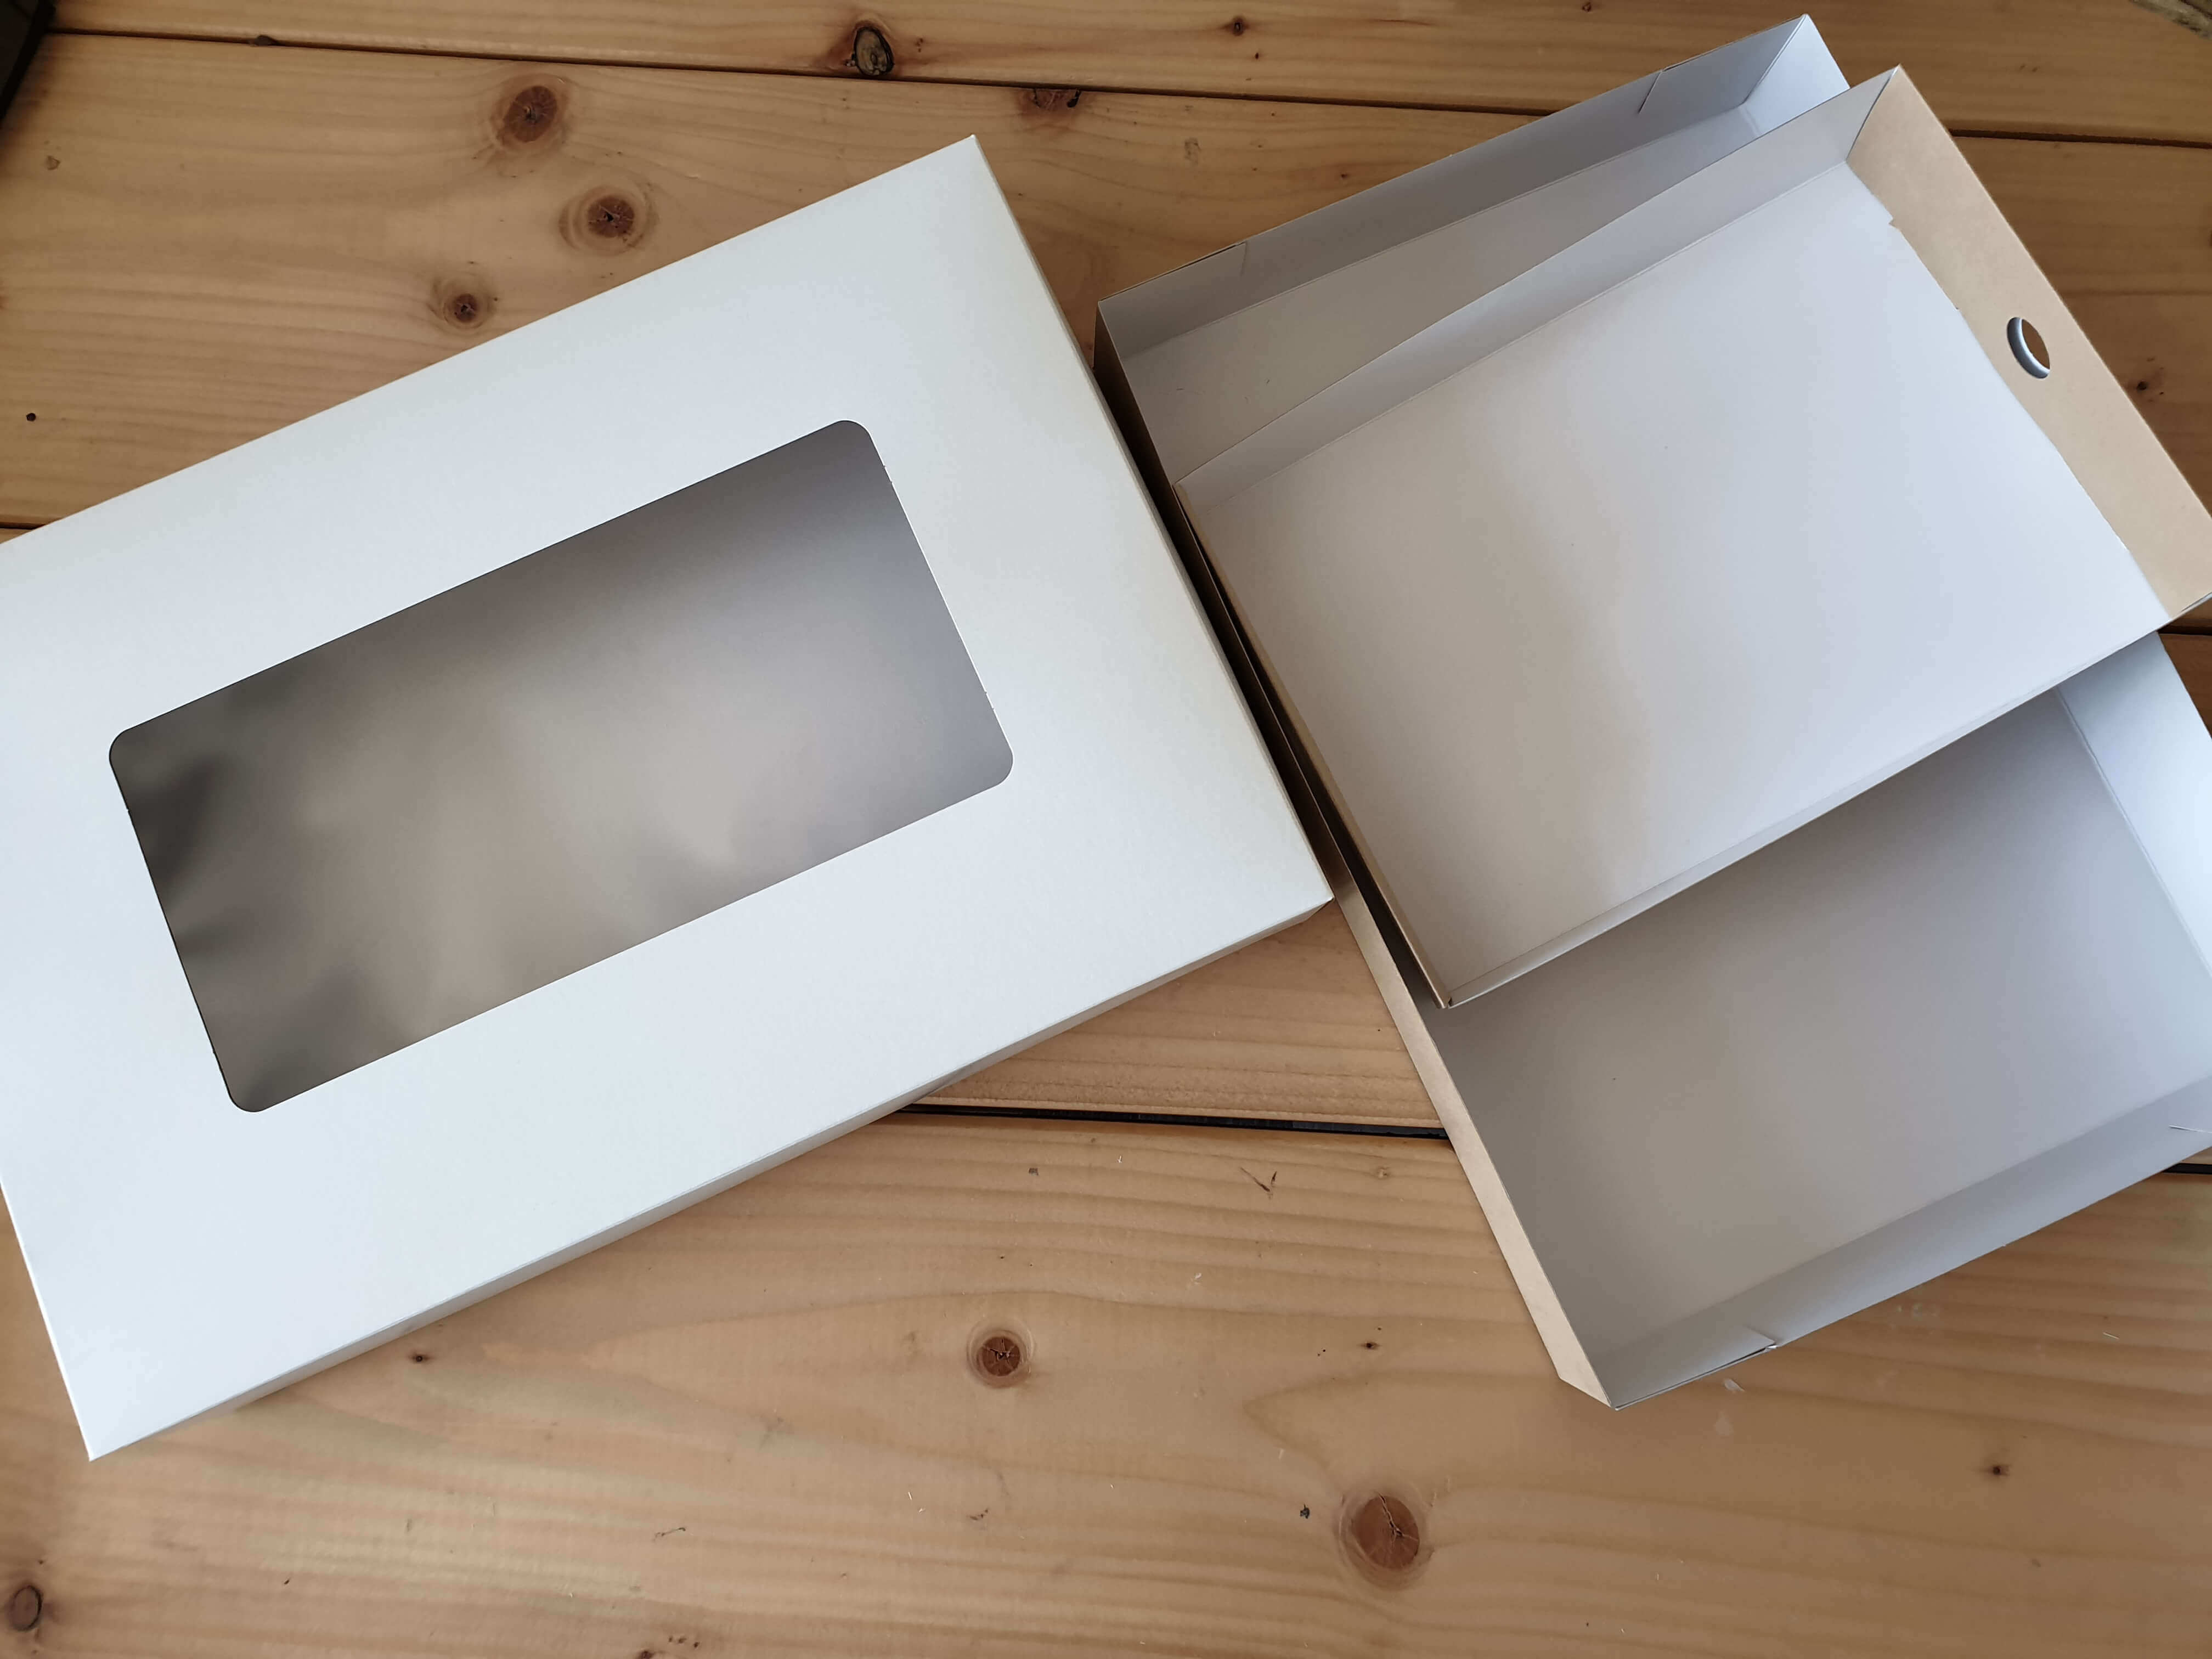 White Windowed Large Platter Box with Full Tray, Half Tray also available